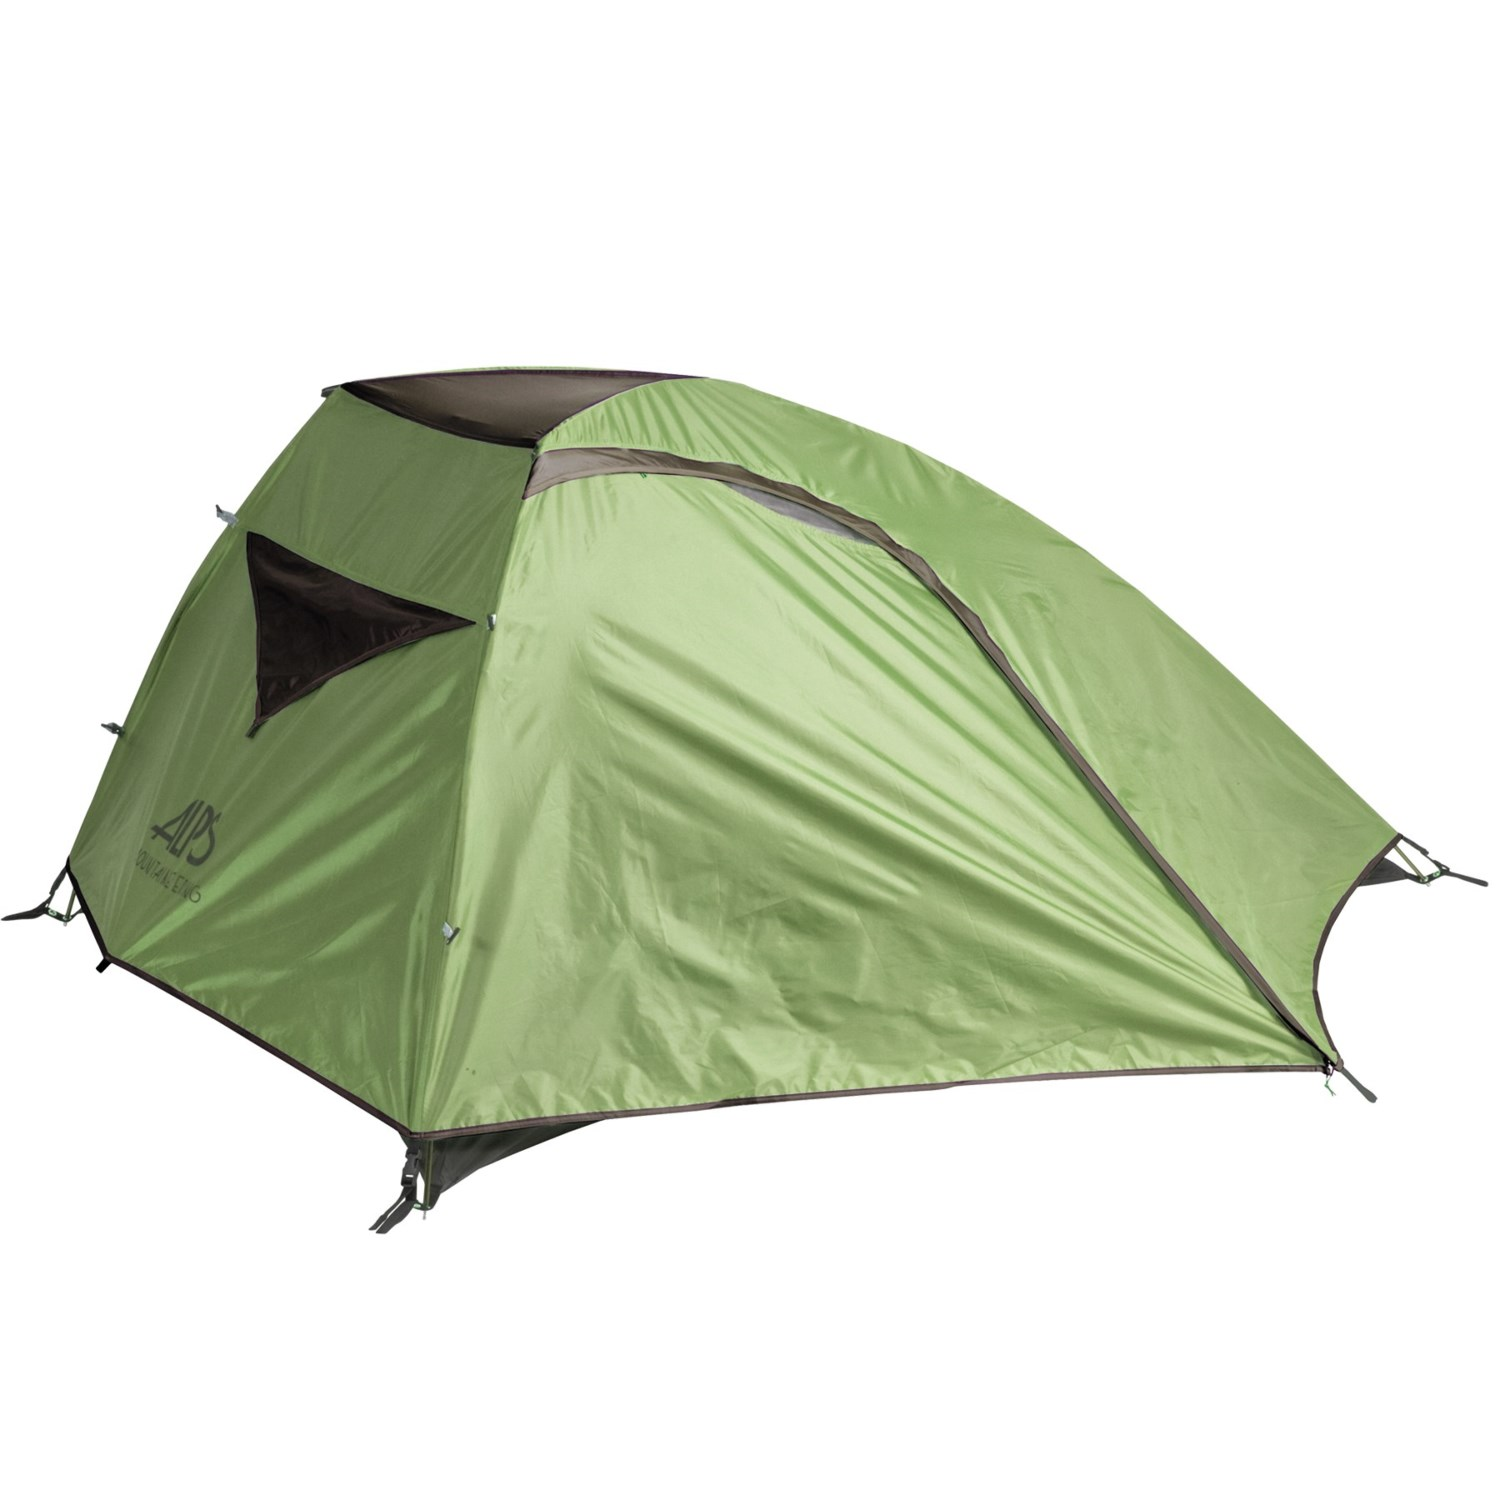 ALPS Mountaineering Zenith 2 AL Tent - 2-Person 3-Season  sc 1 st  Sierra Trading Post & ALPS Mountaineering Zenith 2 AL Tent - 2-Person 3-Season - Save 45%